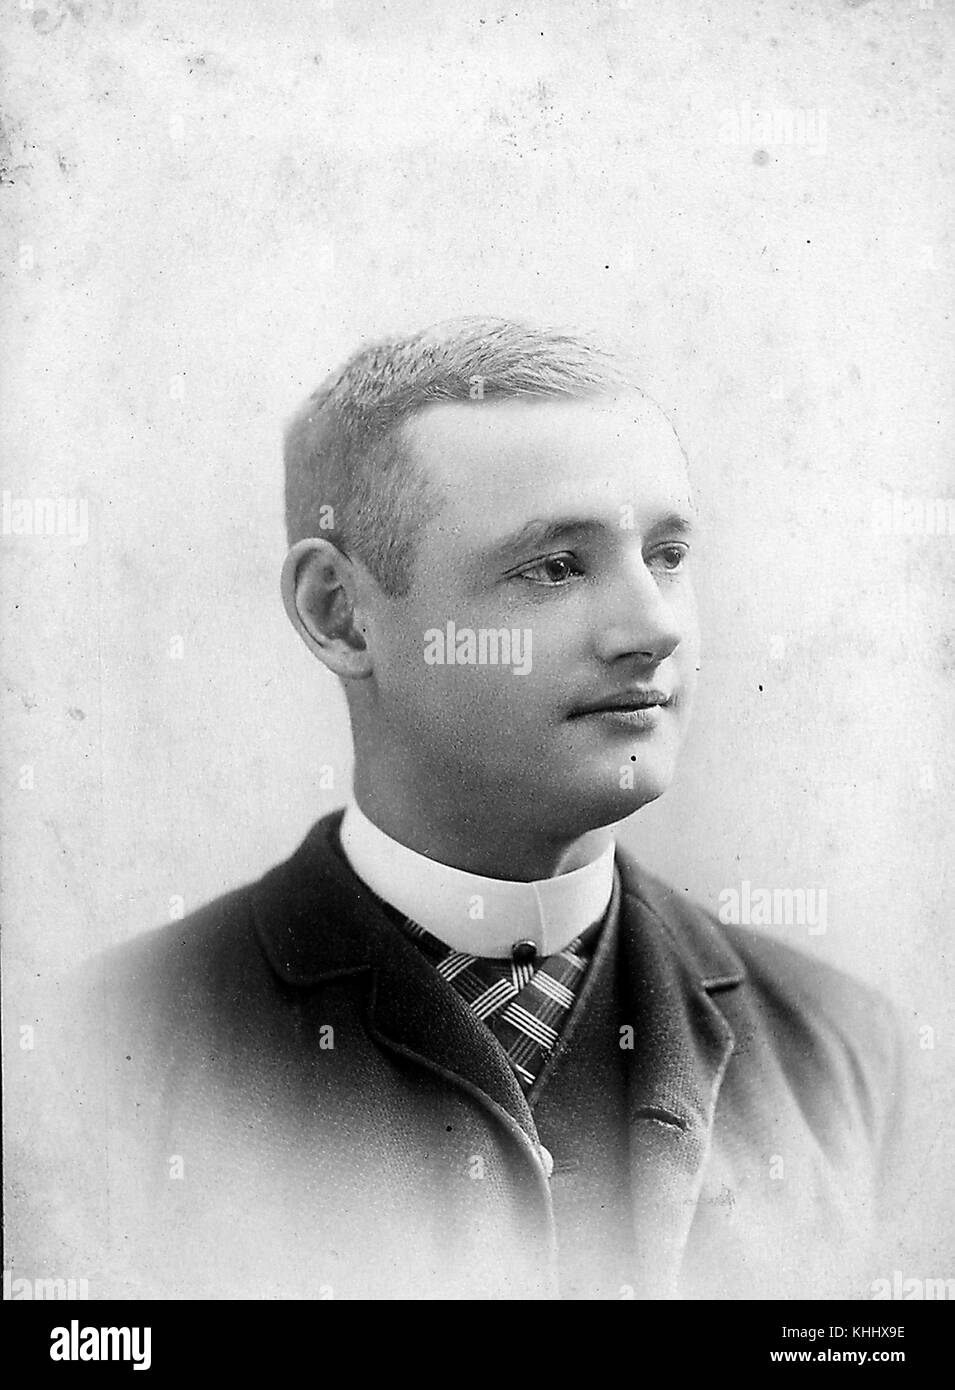 Portrait of George Pinkney, a third baseman for the Cleveland Blues (1884), Brooklyn Grays/Bridegrooms/Grooms(188591), - Stock Image